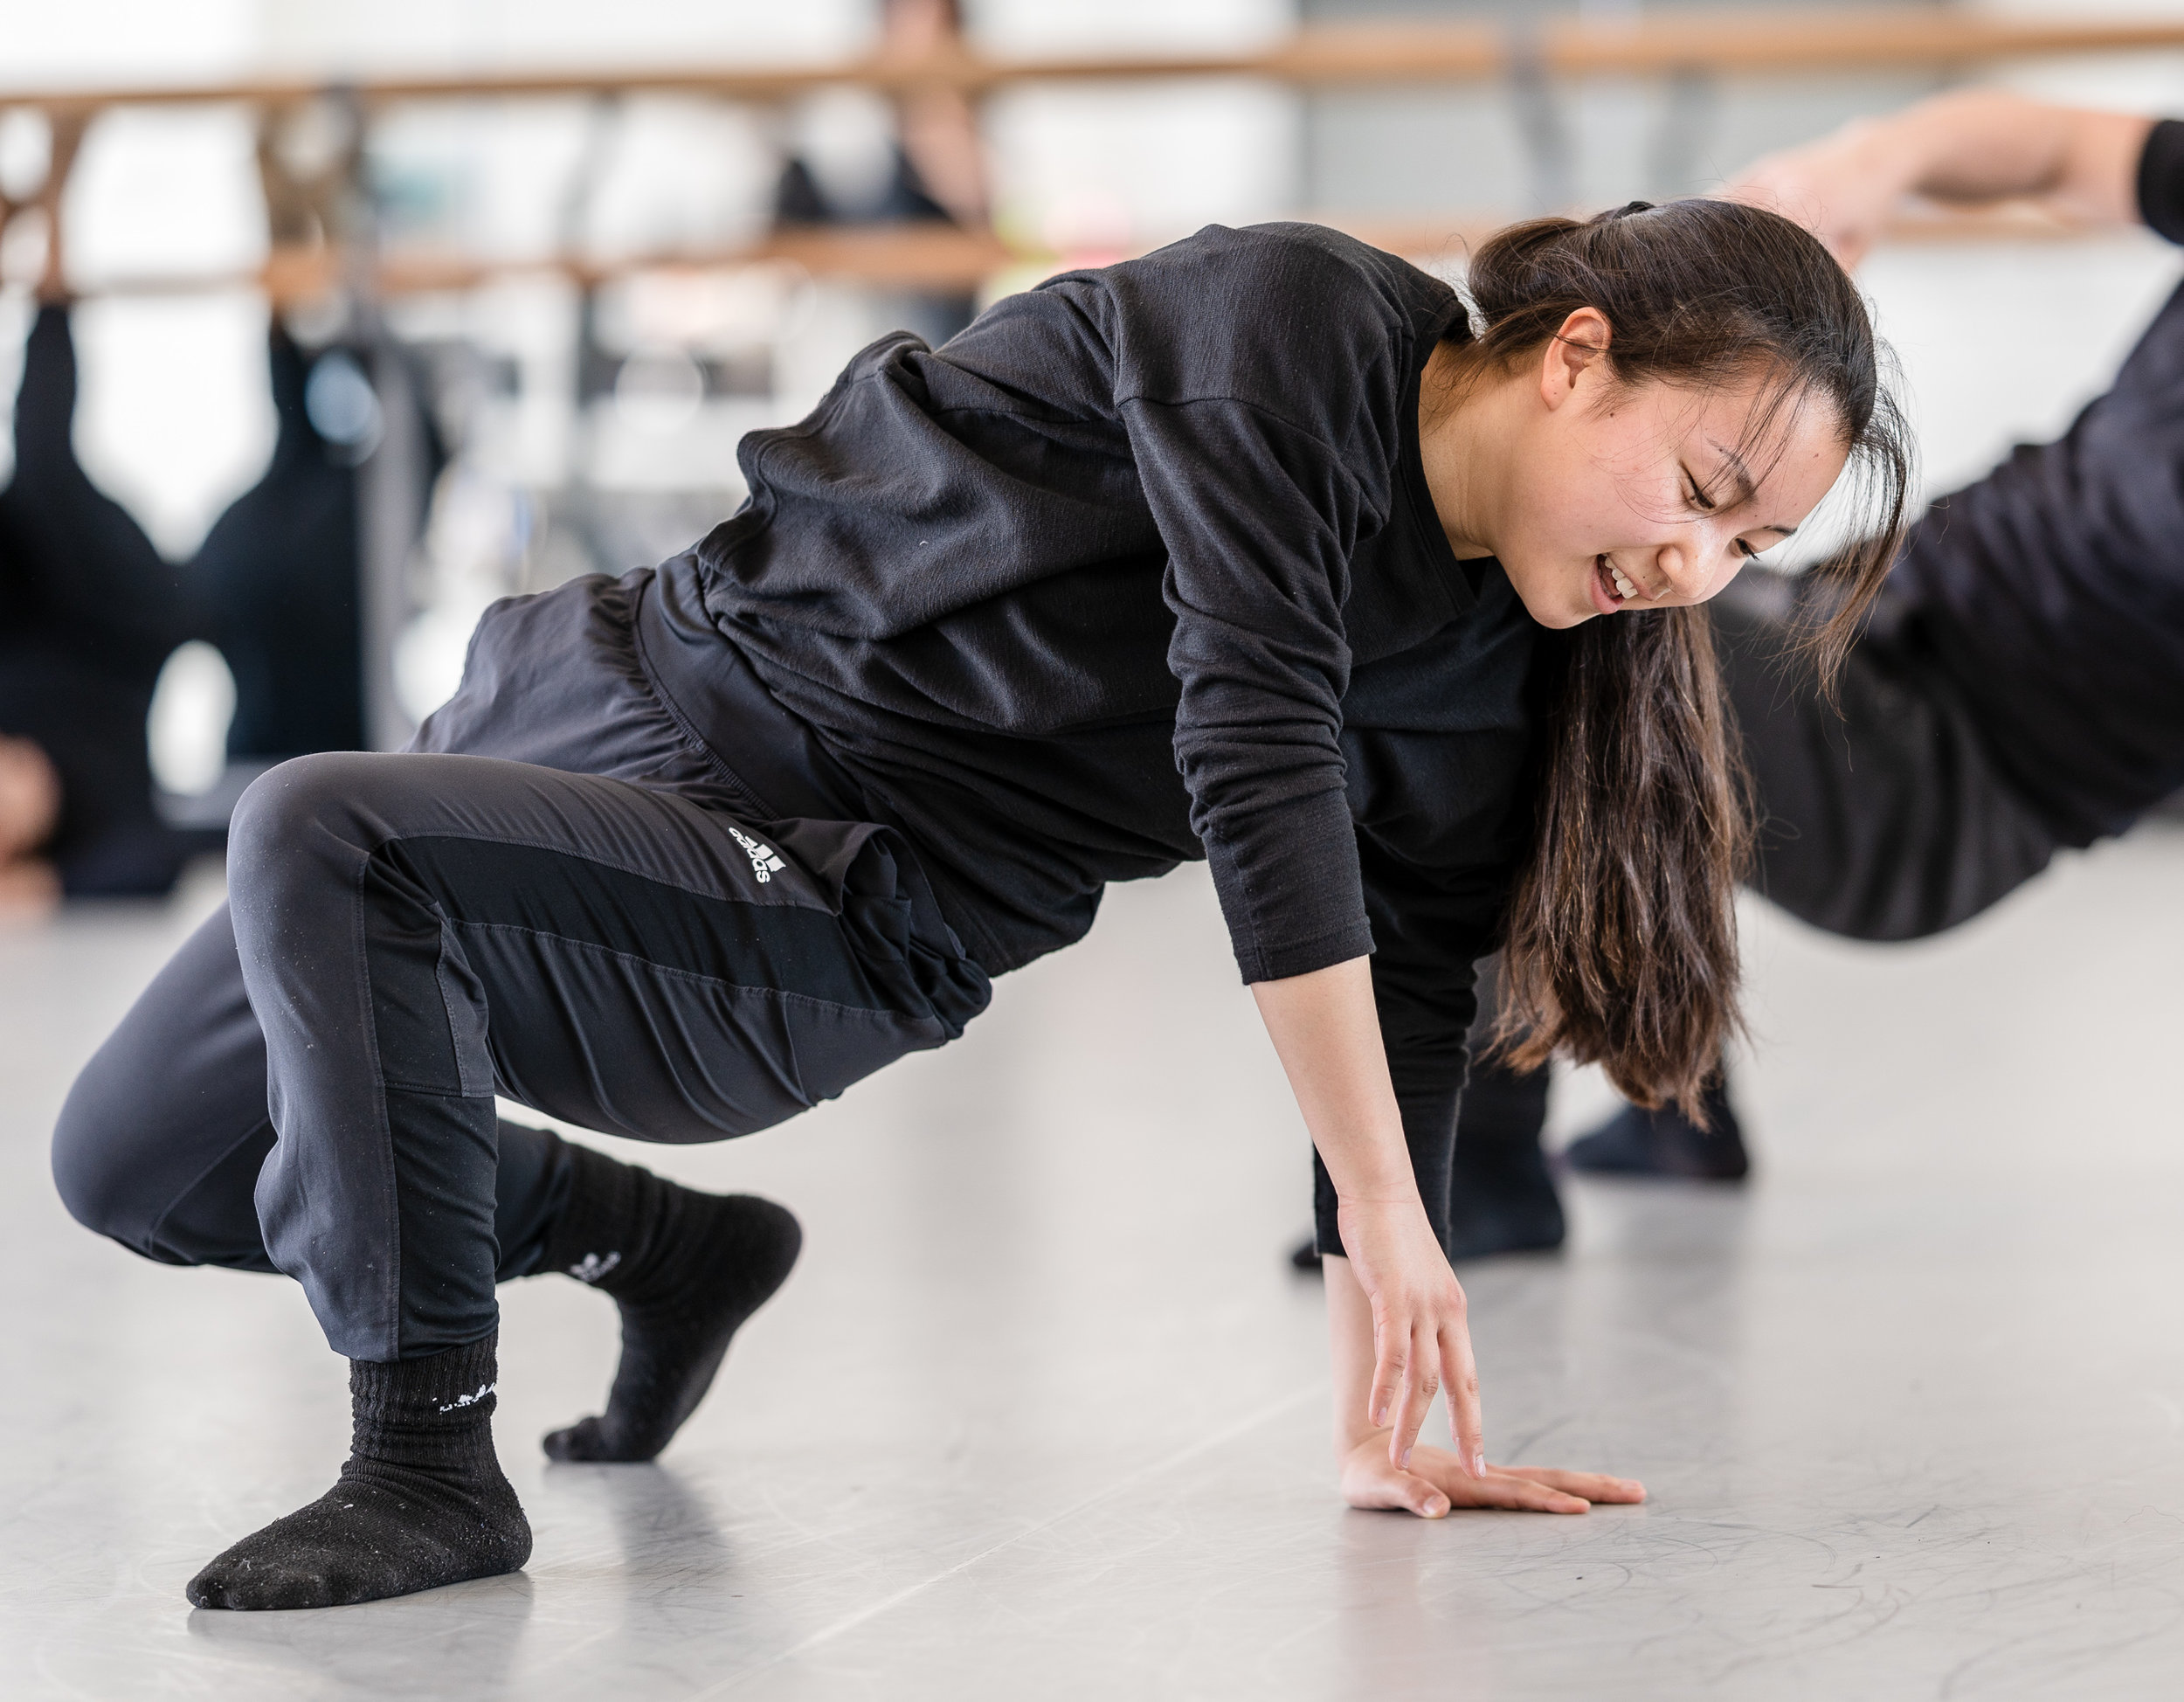 SMC student choreographer Aya Nakaguchi demonstrates a movement for the dancers in her not-yet-titled Synapse Dance Theater piece in the Core Performance Center (CPC) on Tuesday, March 12, 2019. Nakaguchi's choreographic concept started with a strict grid structure that allowed dancers to move across the stage, or upstage and downstage, but not on   diagonals or arcs. Nakaguchi said that as her rehearsals have progressed, the grid remains, but it has softened. Synapse Dance Theater will be presented on Friday and Saturday, May 24 and 25, on the SMC Broad Stage at the Performing Arts Complex (PAC) (Glenn Zucman/The Corsair)